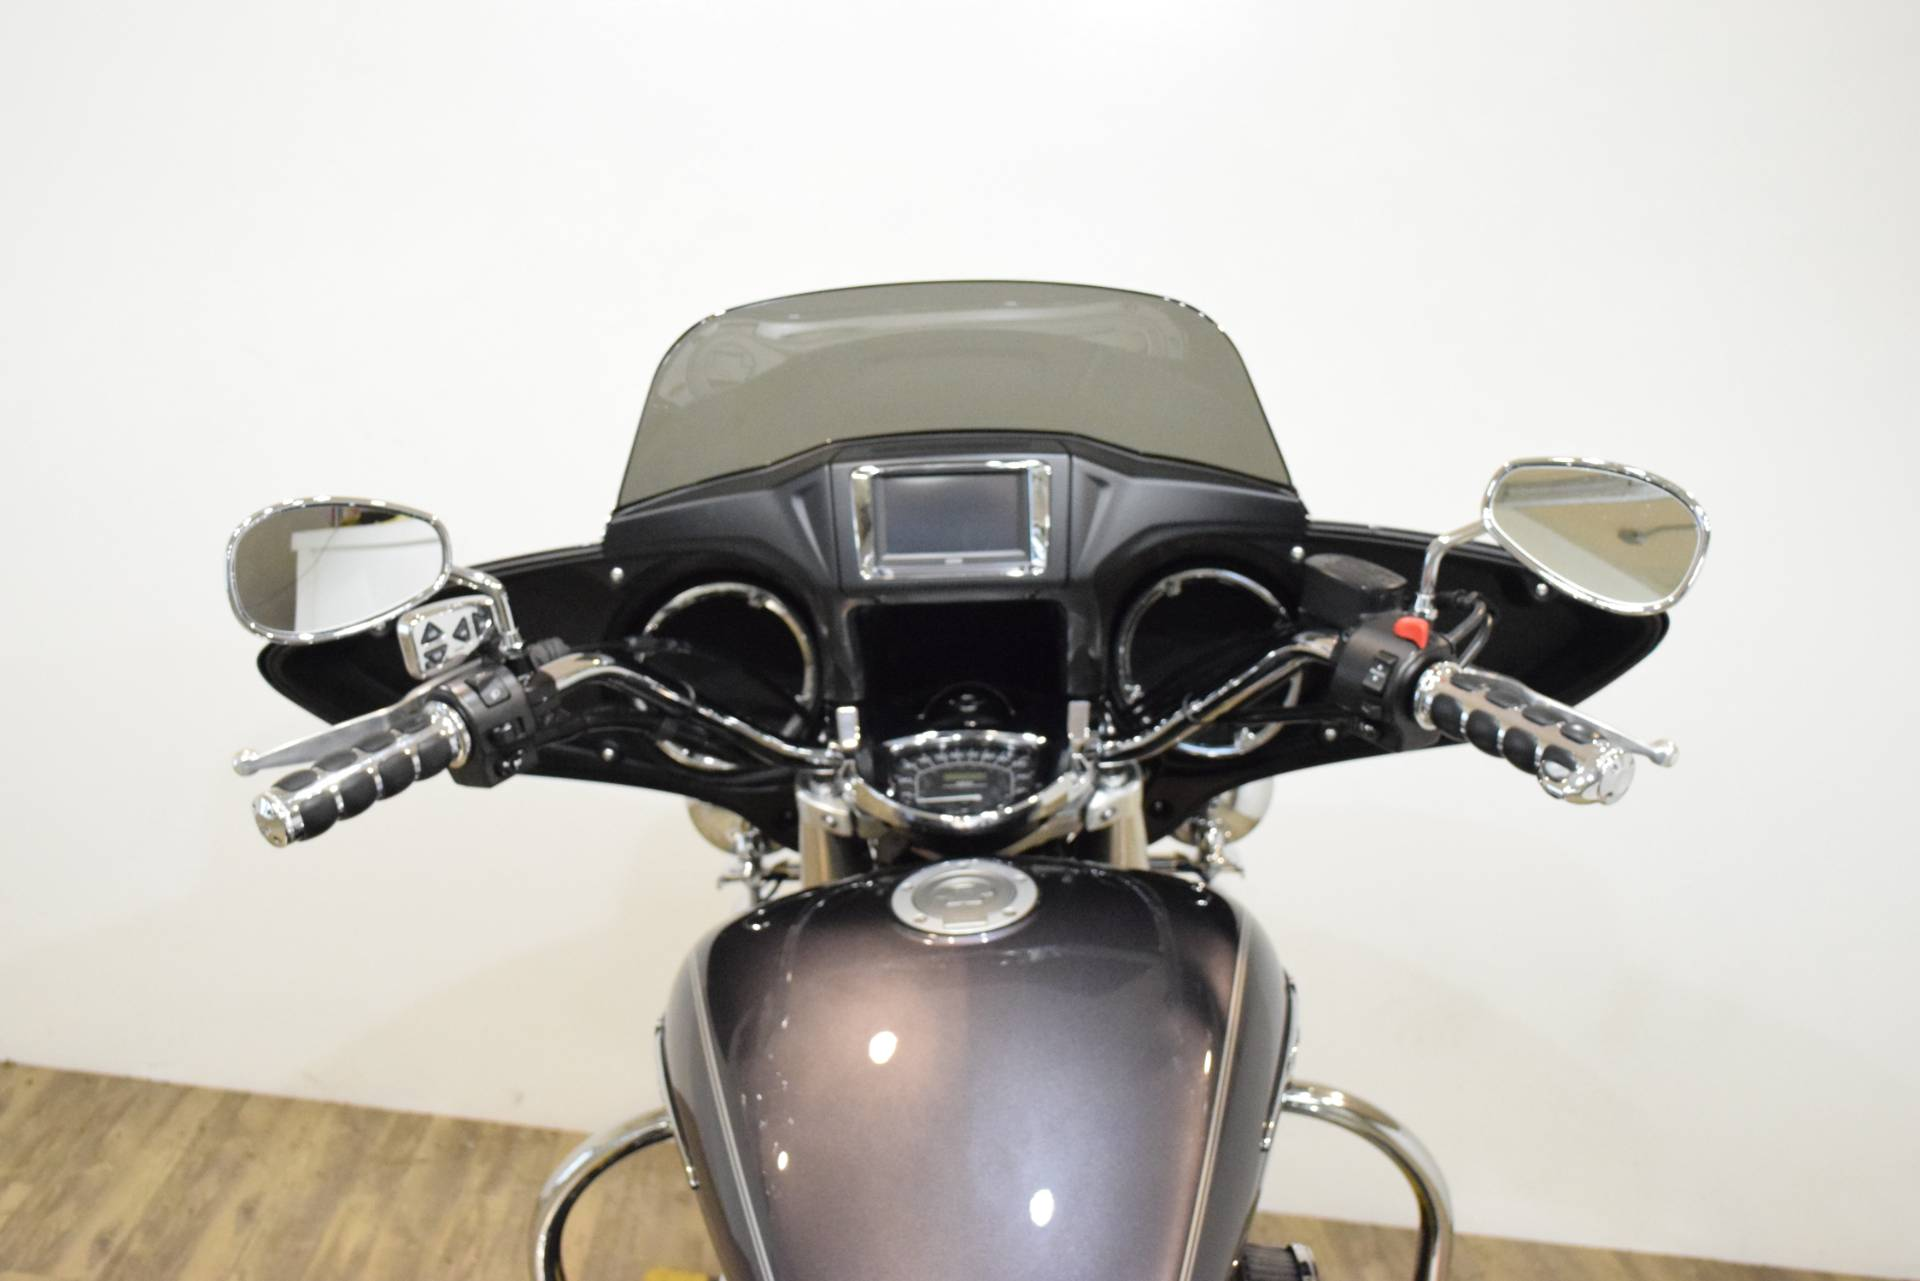 2014 Yamaha V Star 1300 Deluxe in Wauconda, Illinois - Photo 30